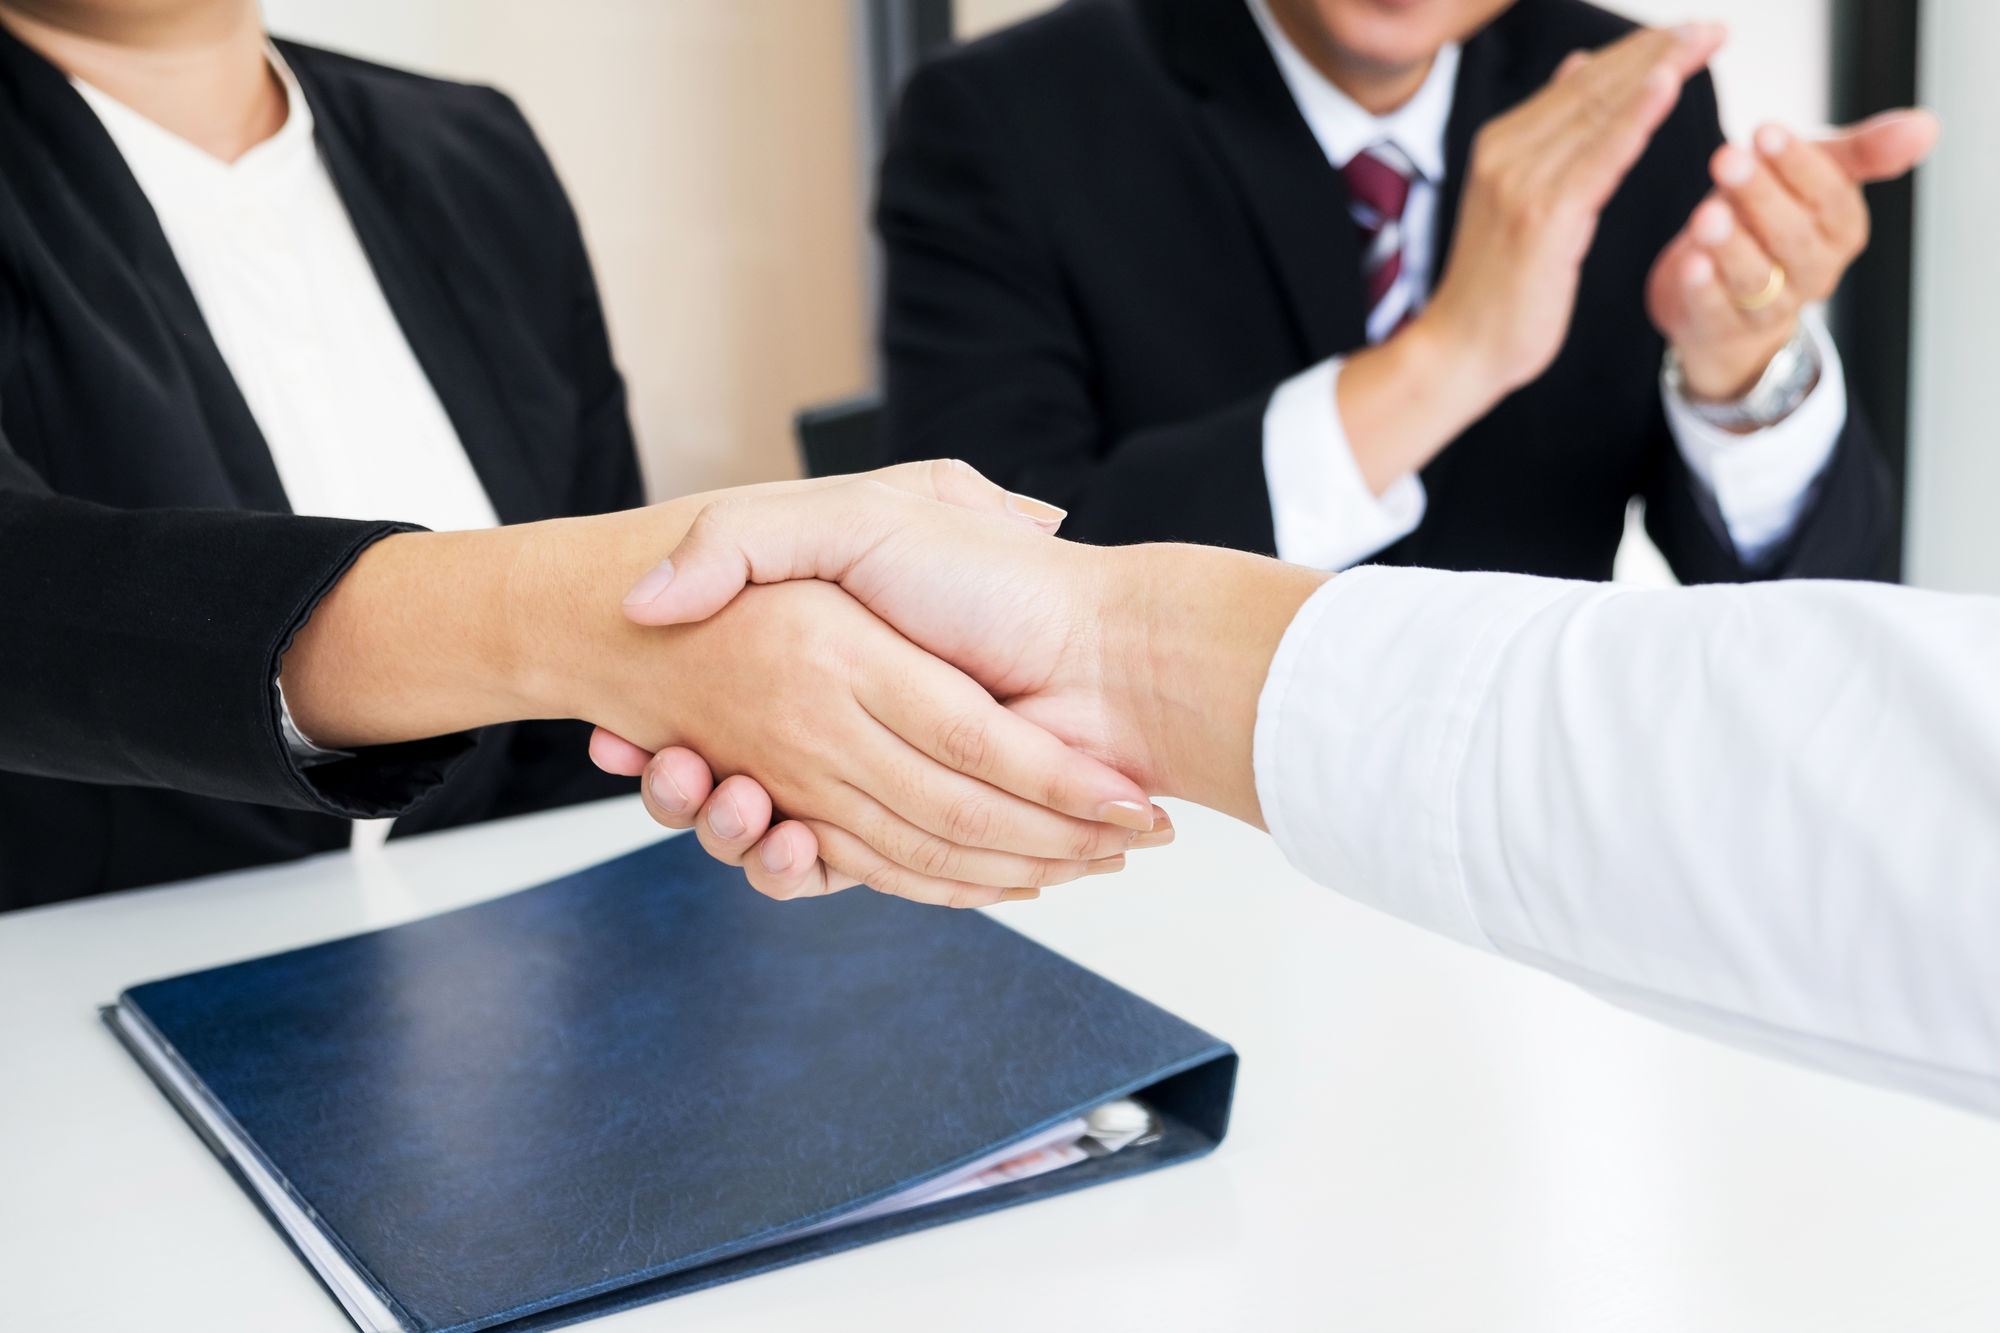 Successful Business Team Shaking Hands With Eachother In The Office Job Interview Concept